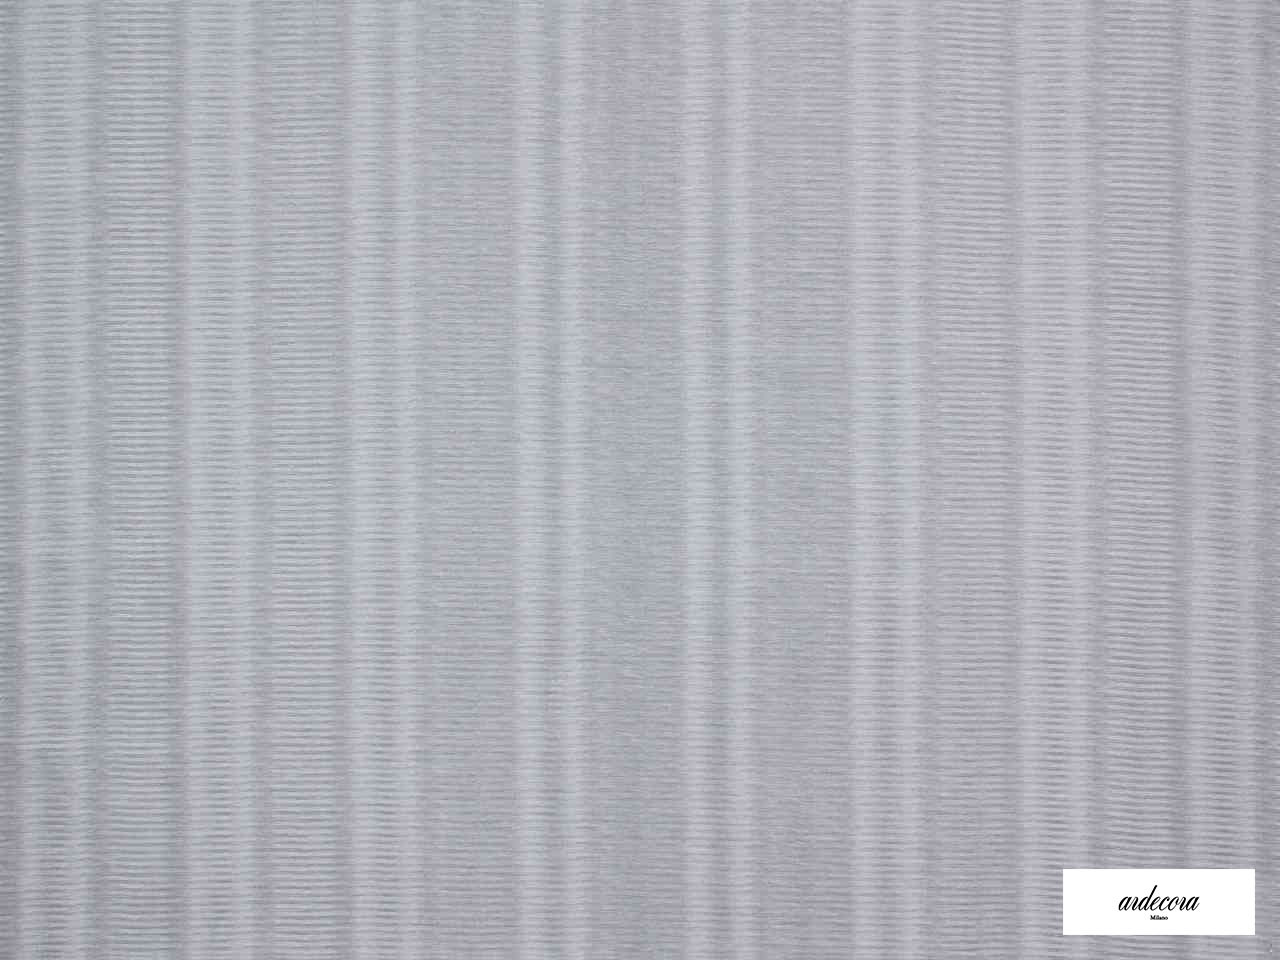 Ardecora - Visconti - 15385.994  | Curtain Fabric - Grey, Fibre Blends, Stripe, Traditional, Domestic Use, Standard Width, Strie